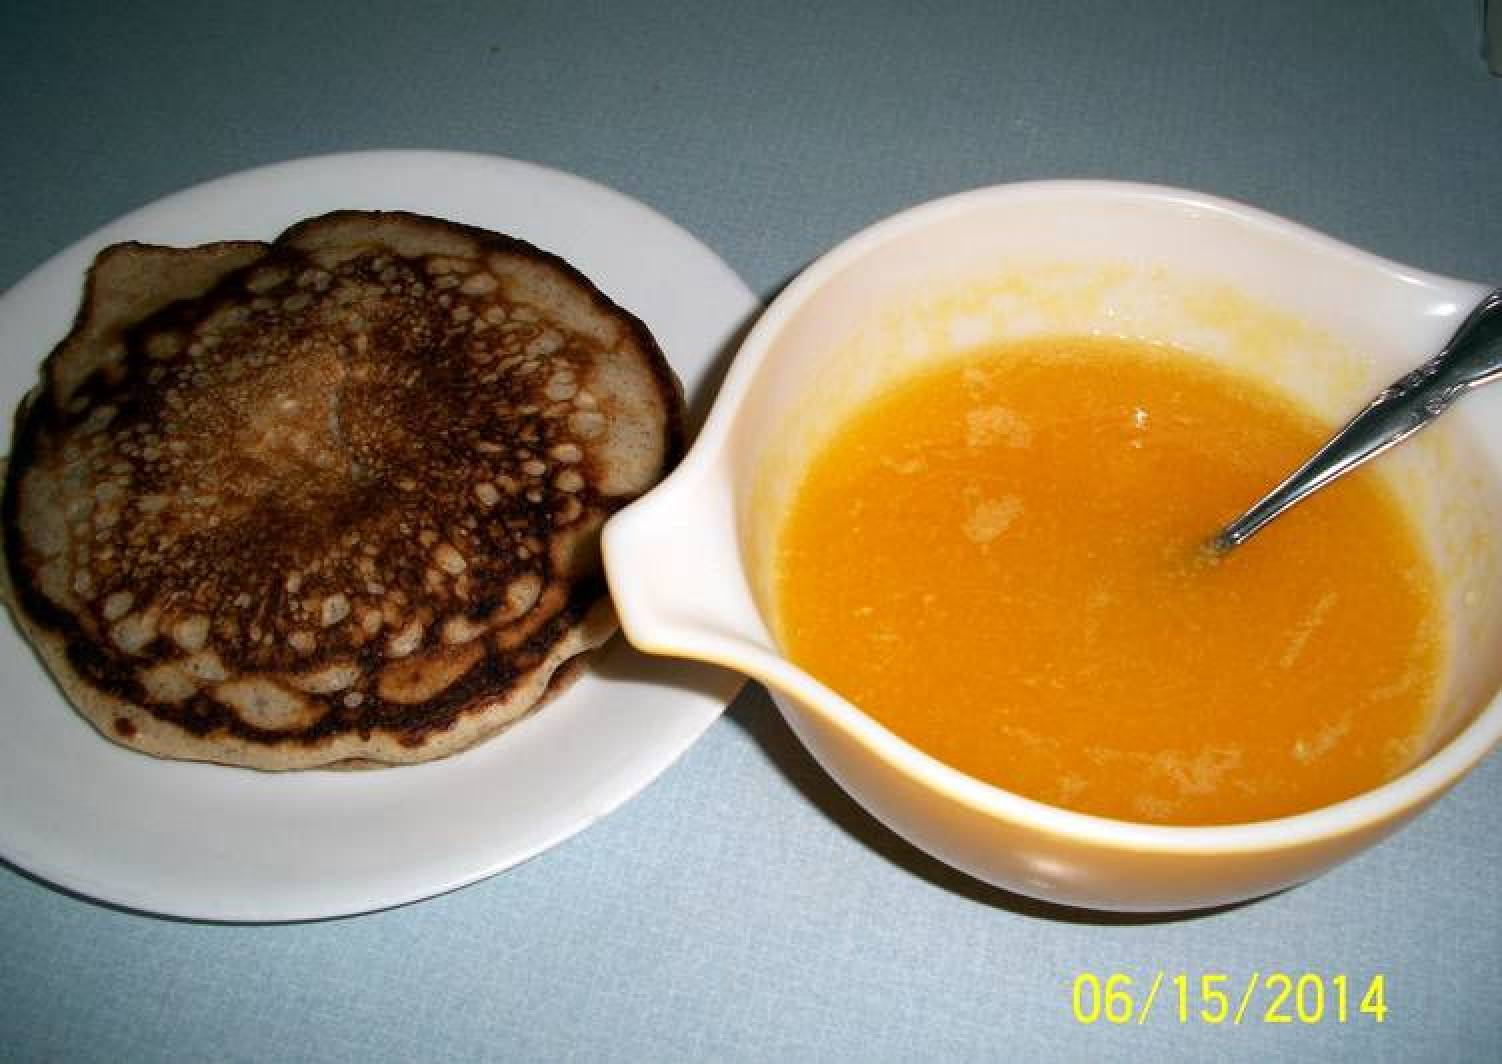 Orange sauce for pancakes and waffles